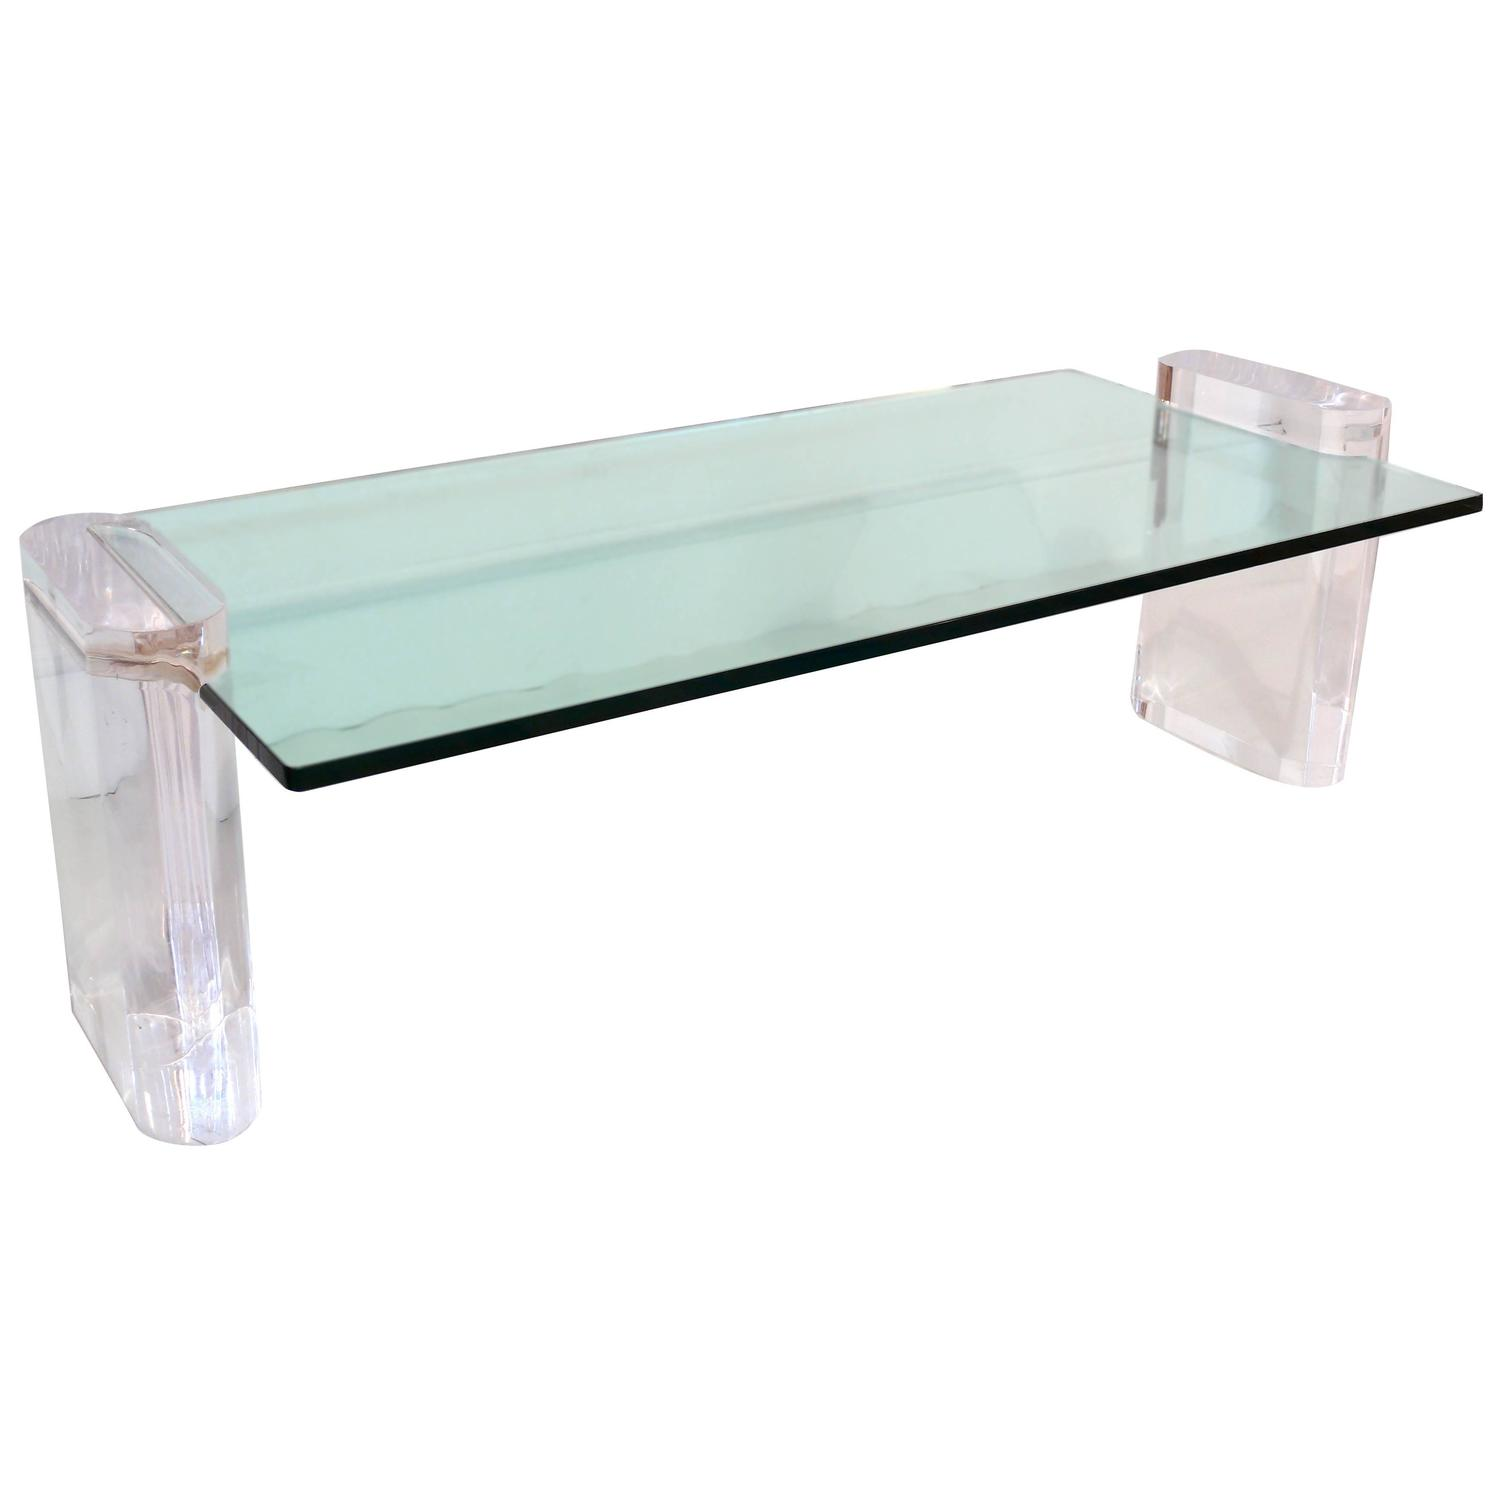 Lucite and glass coffee table for sale at 1stdibs for Acrylic coffee tables for sale